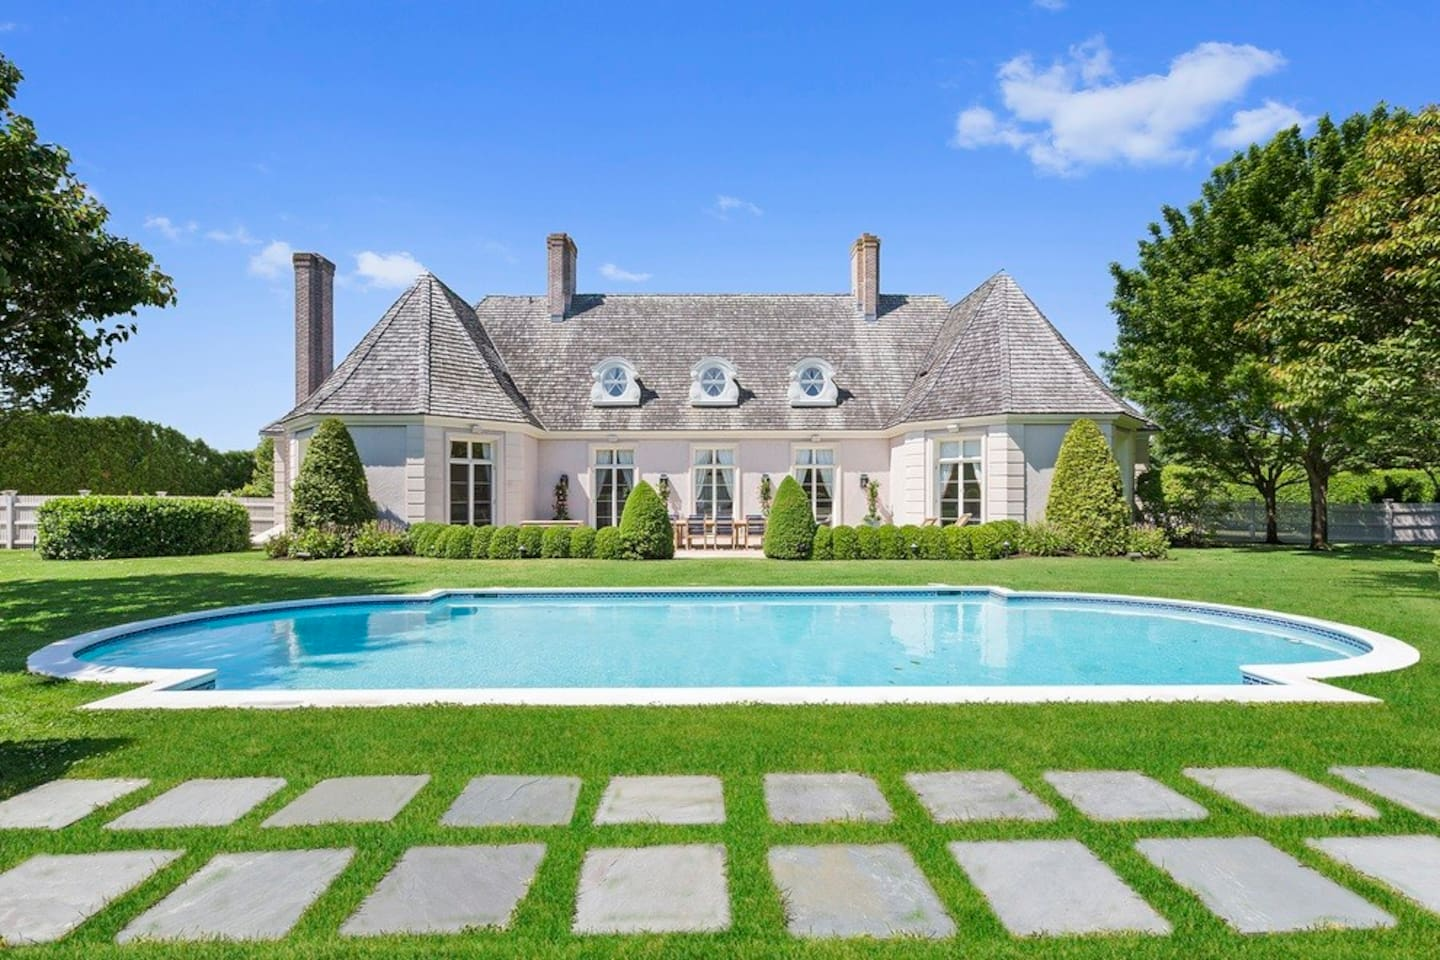 Summer lifestyle in the Hamptons